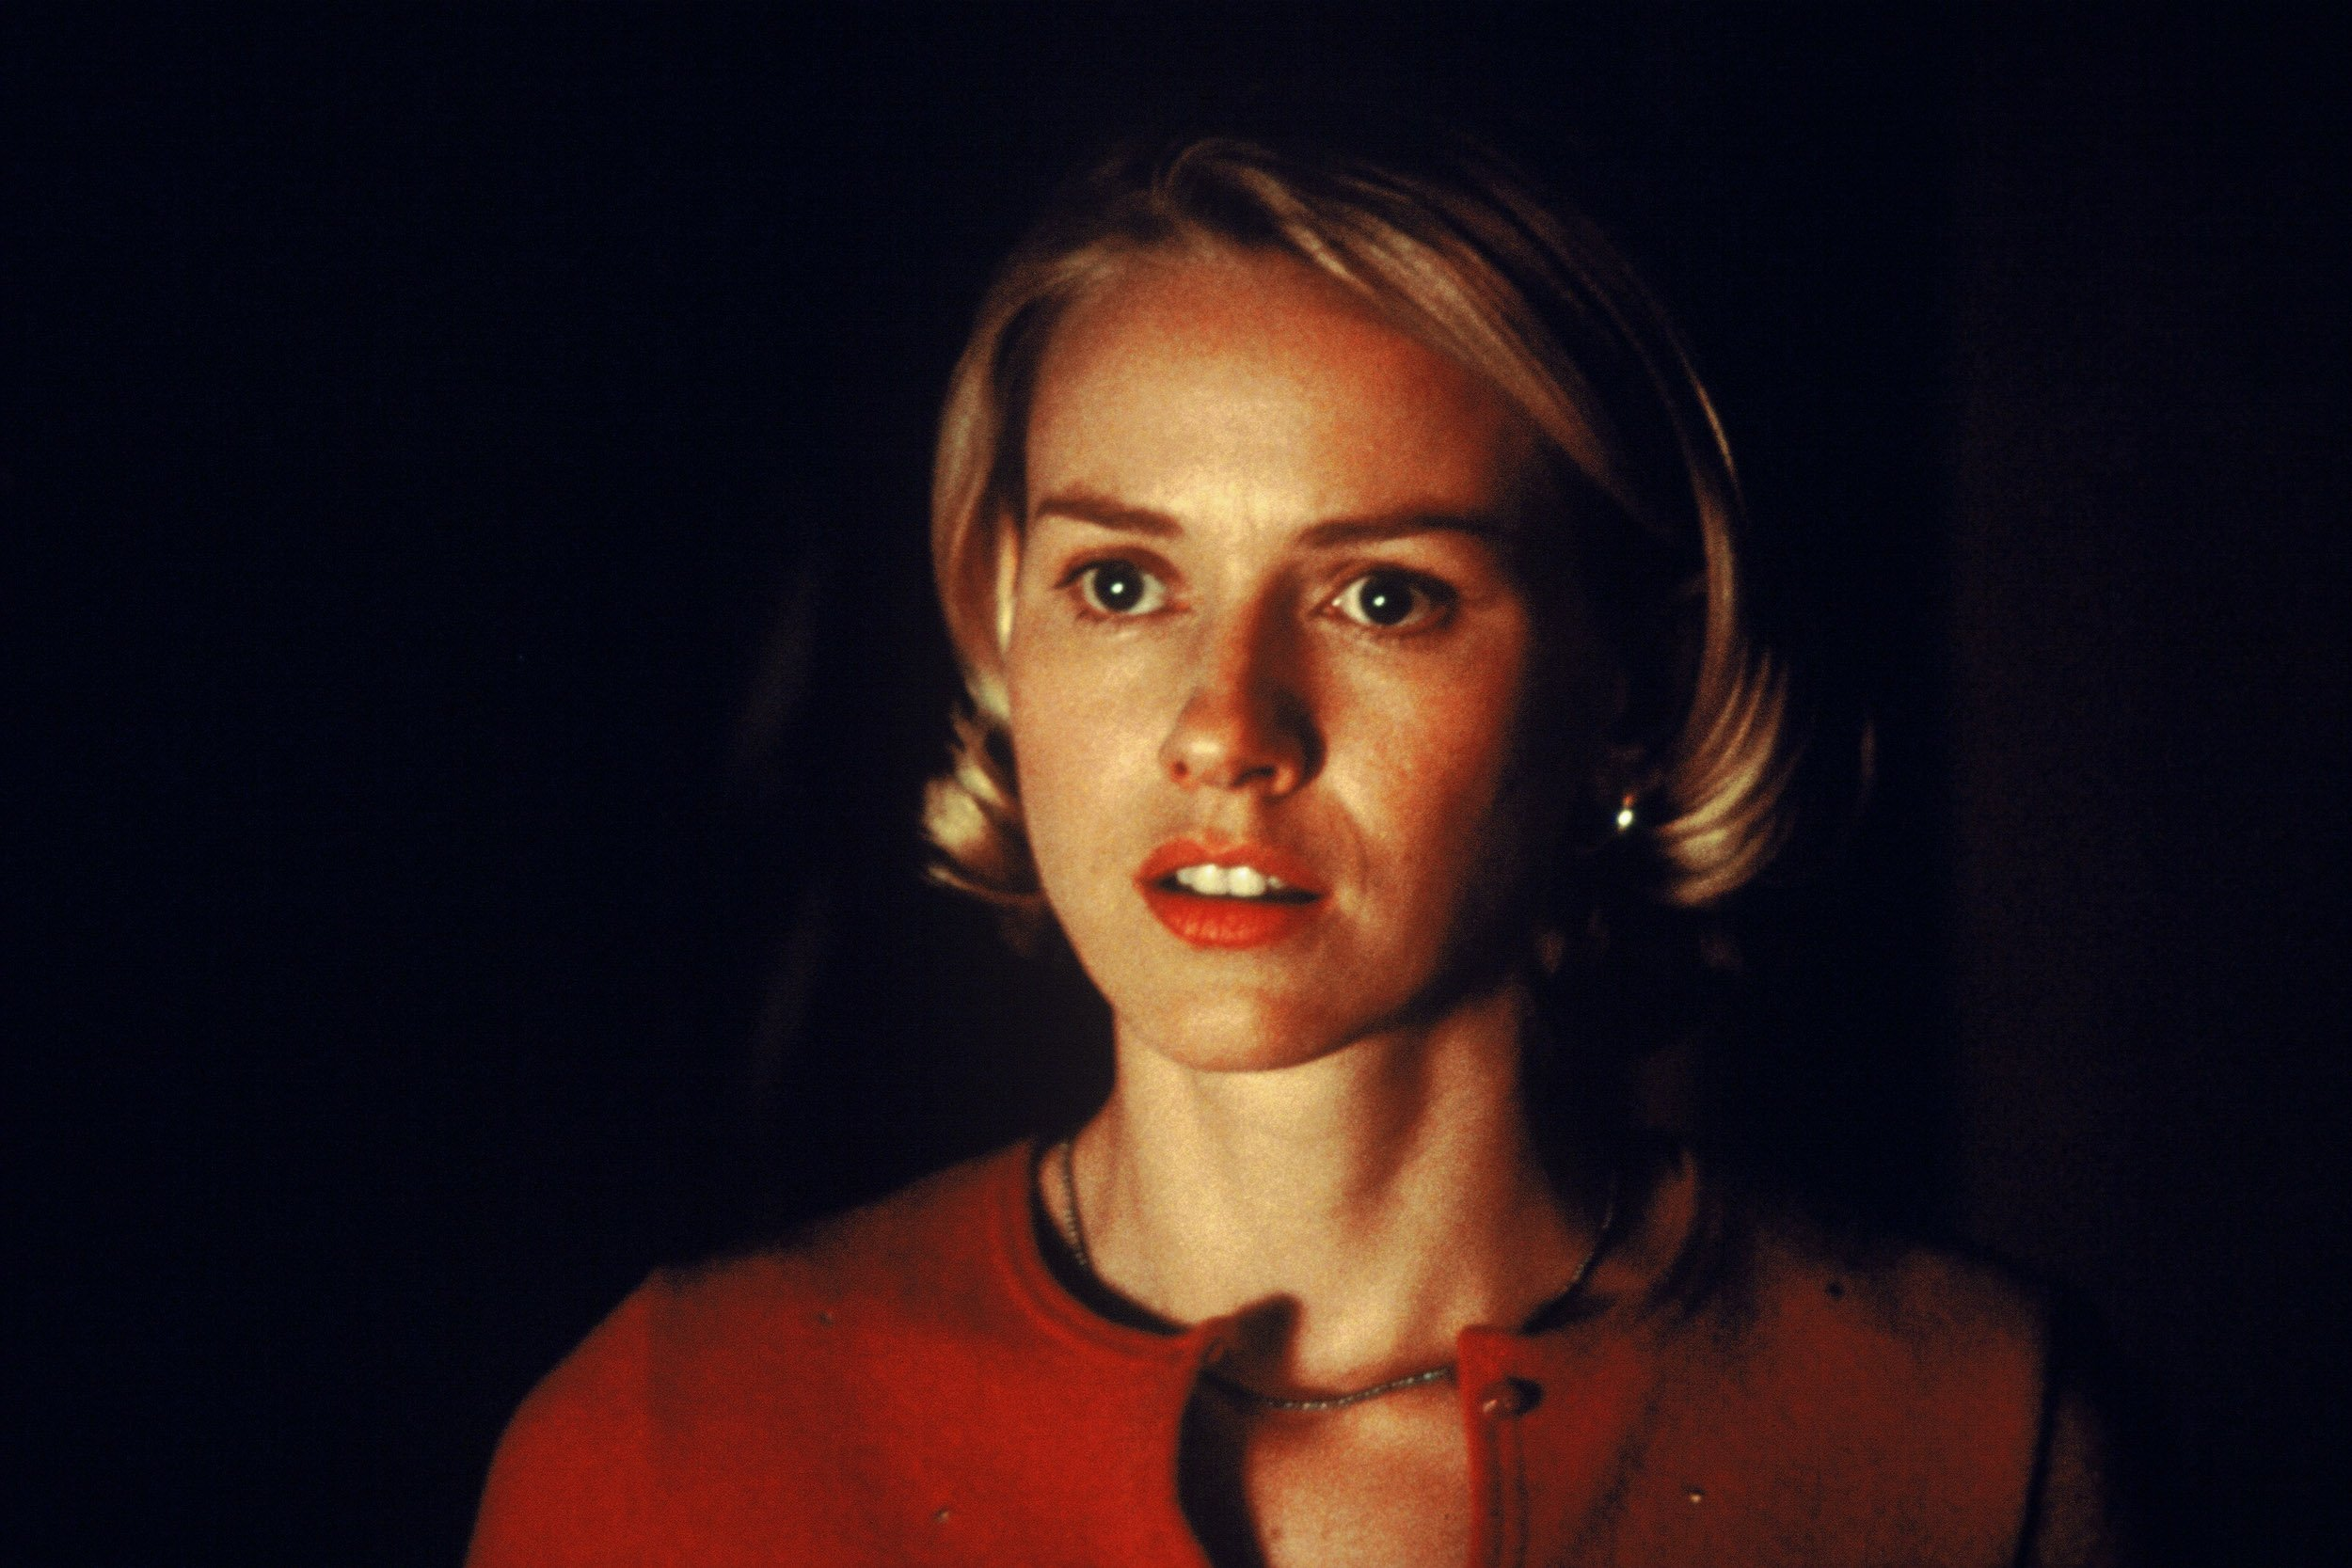 The Conversations: Mulholland Drive